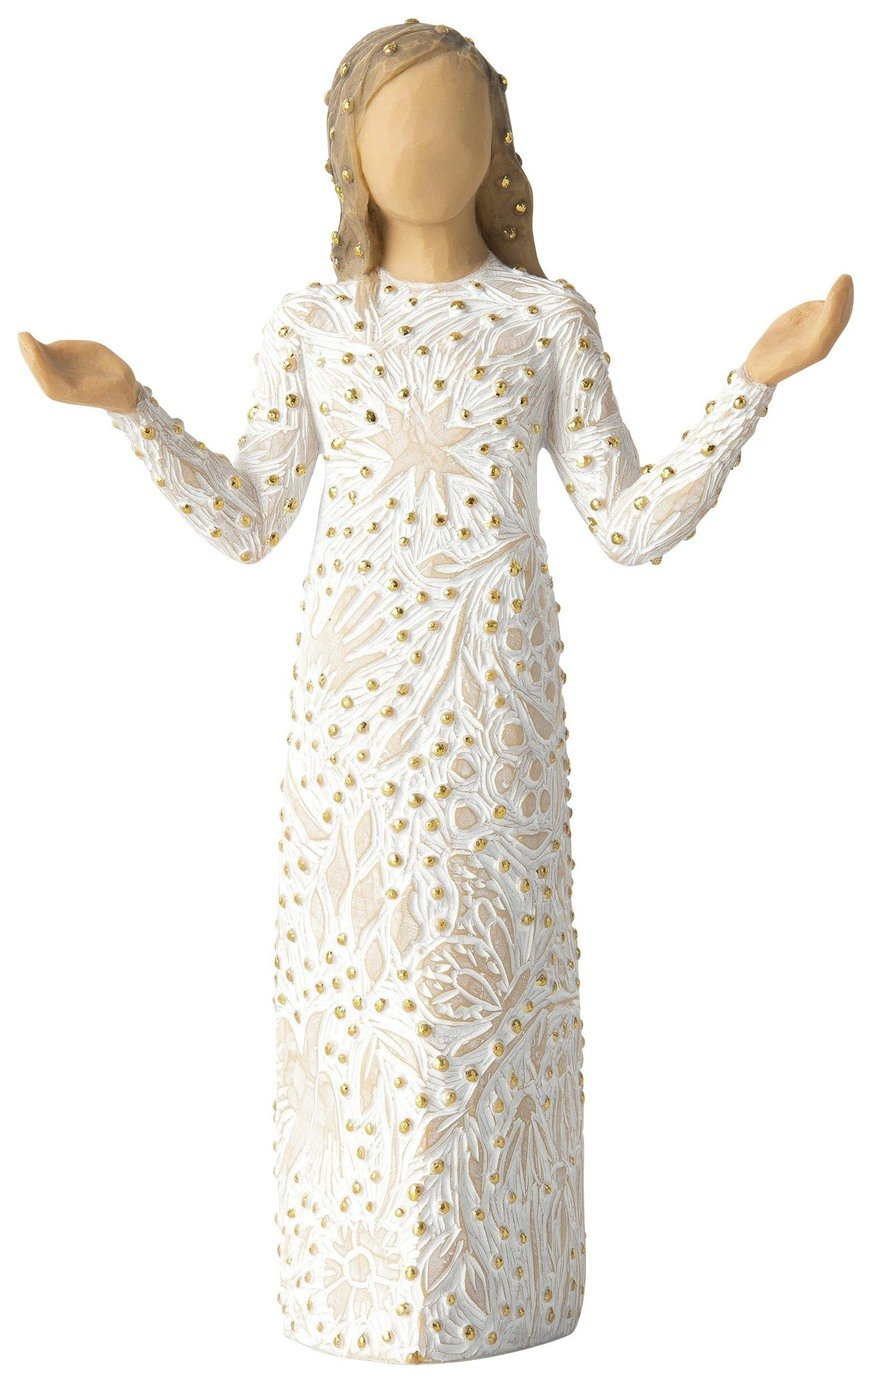 Willow Tree Everyday Blessings Figurine